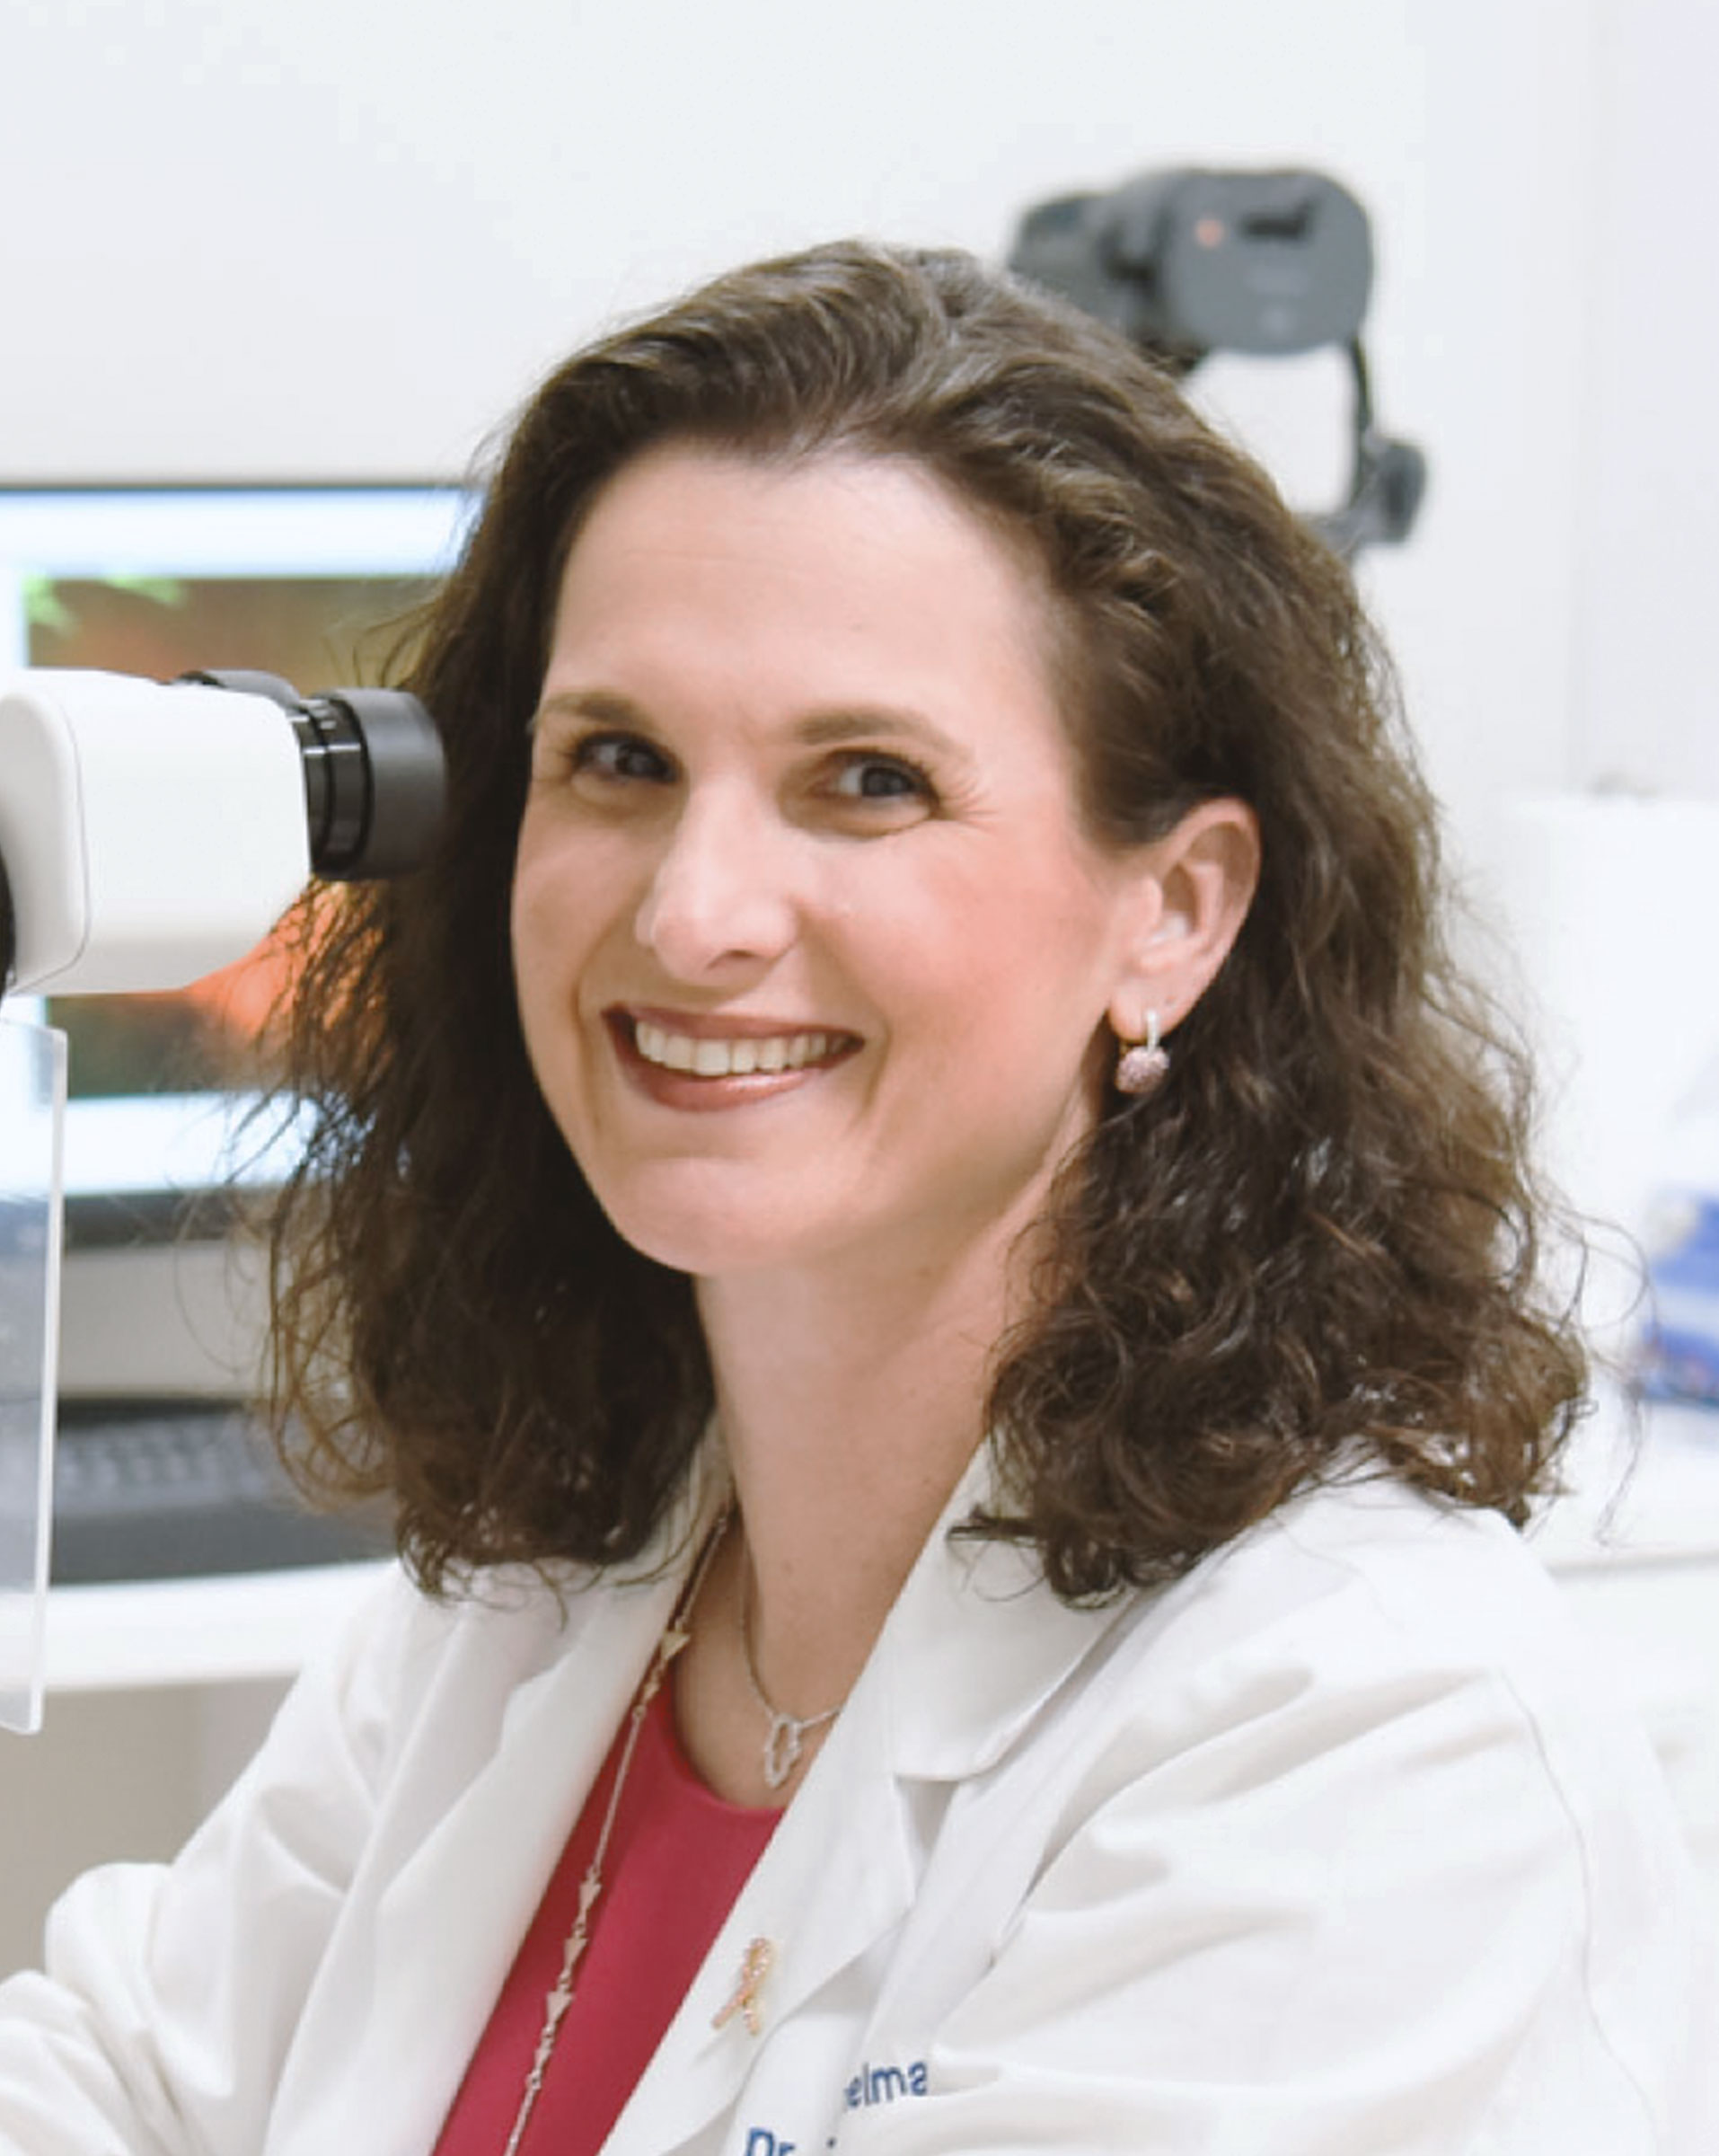 One of Our Optometrist On Our Team, Dr. Tracey Kimmelman